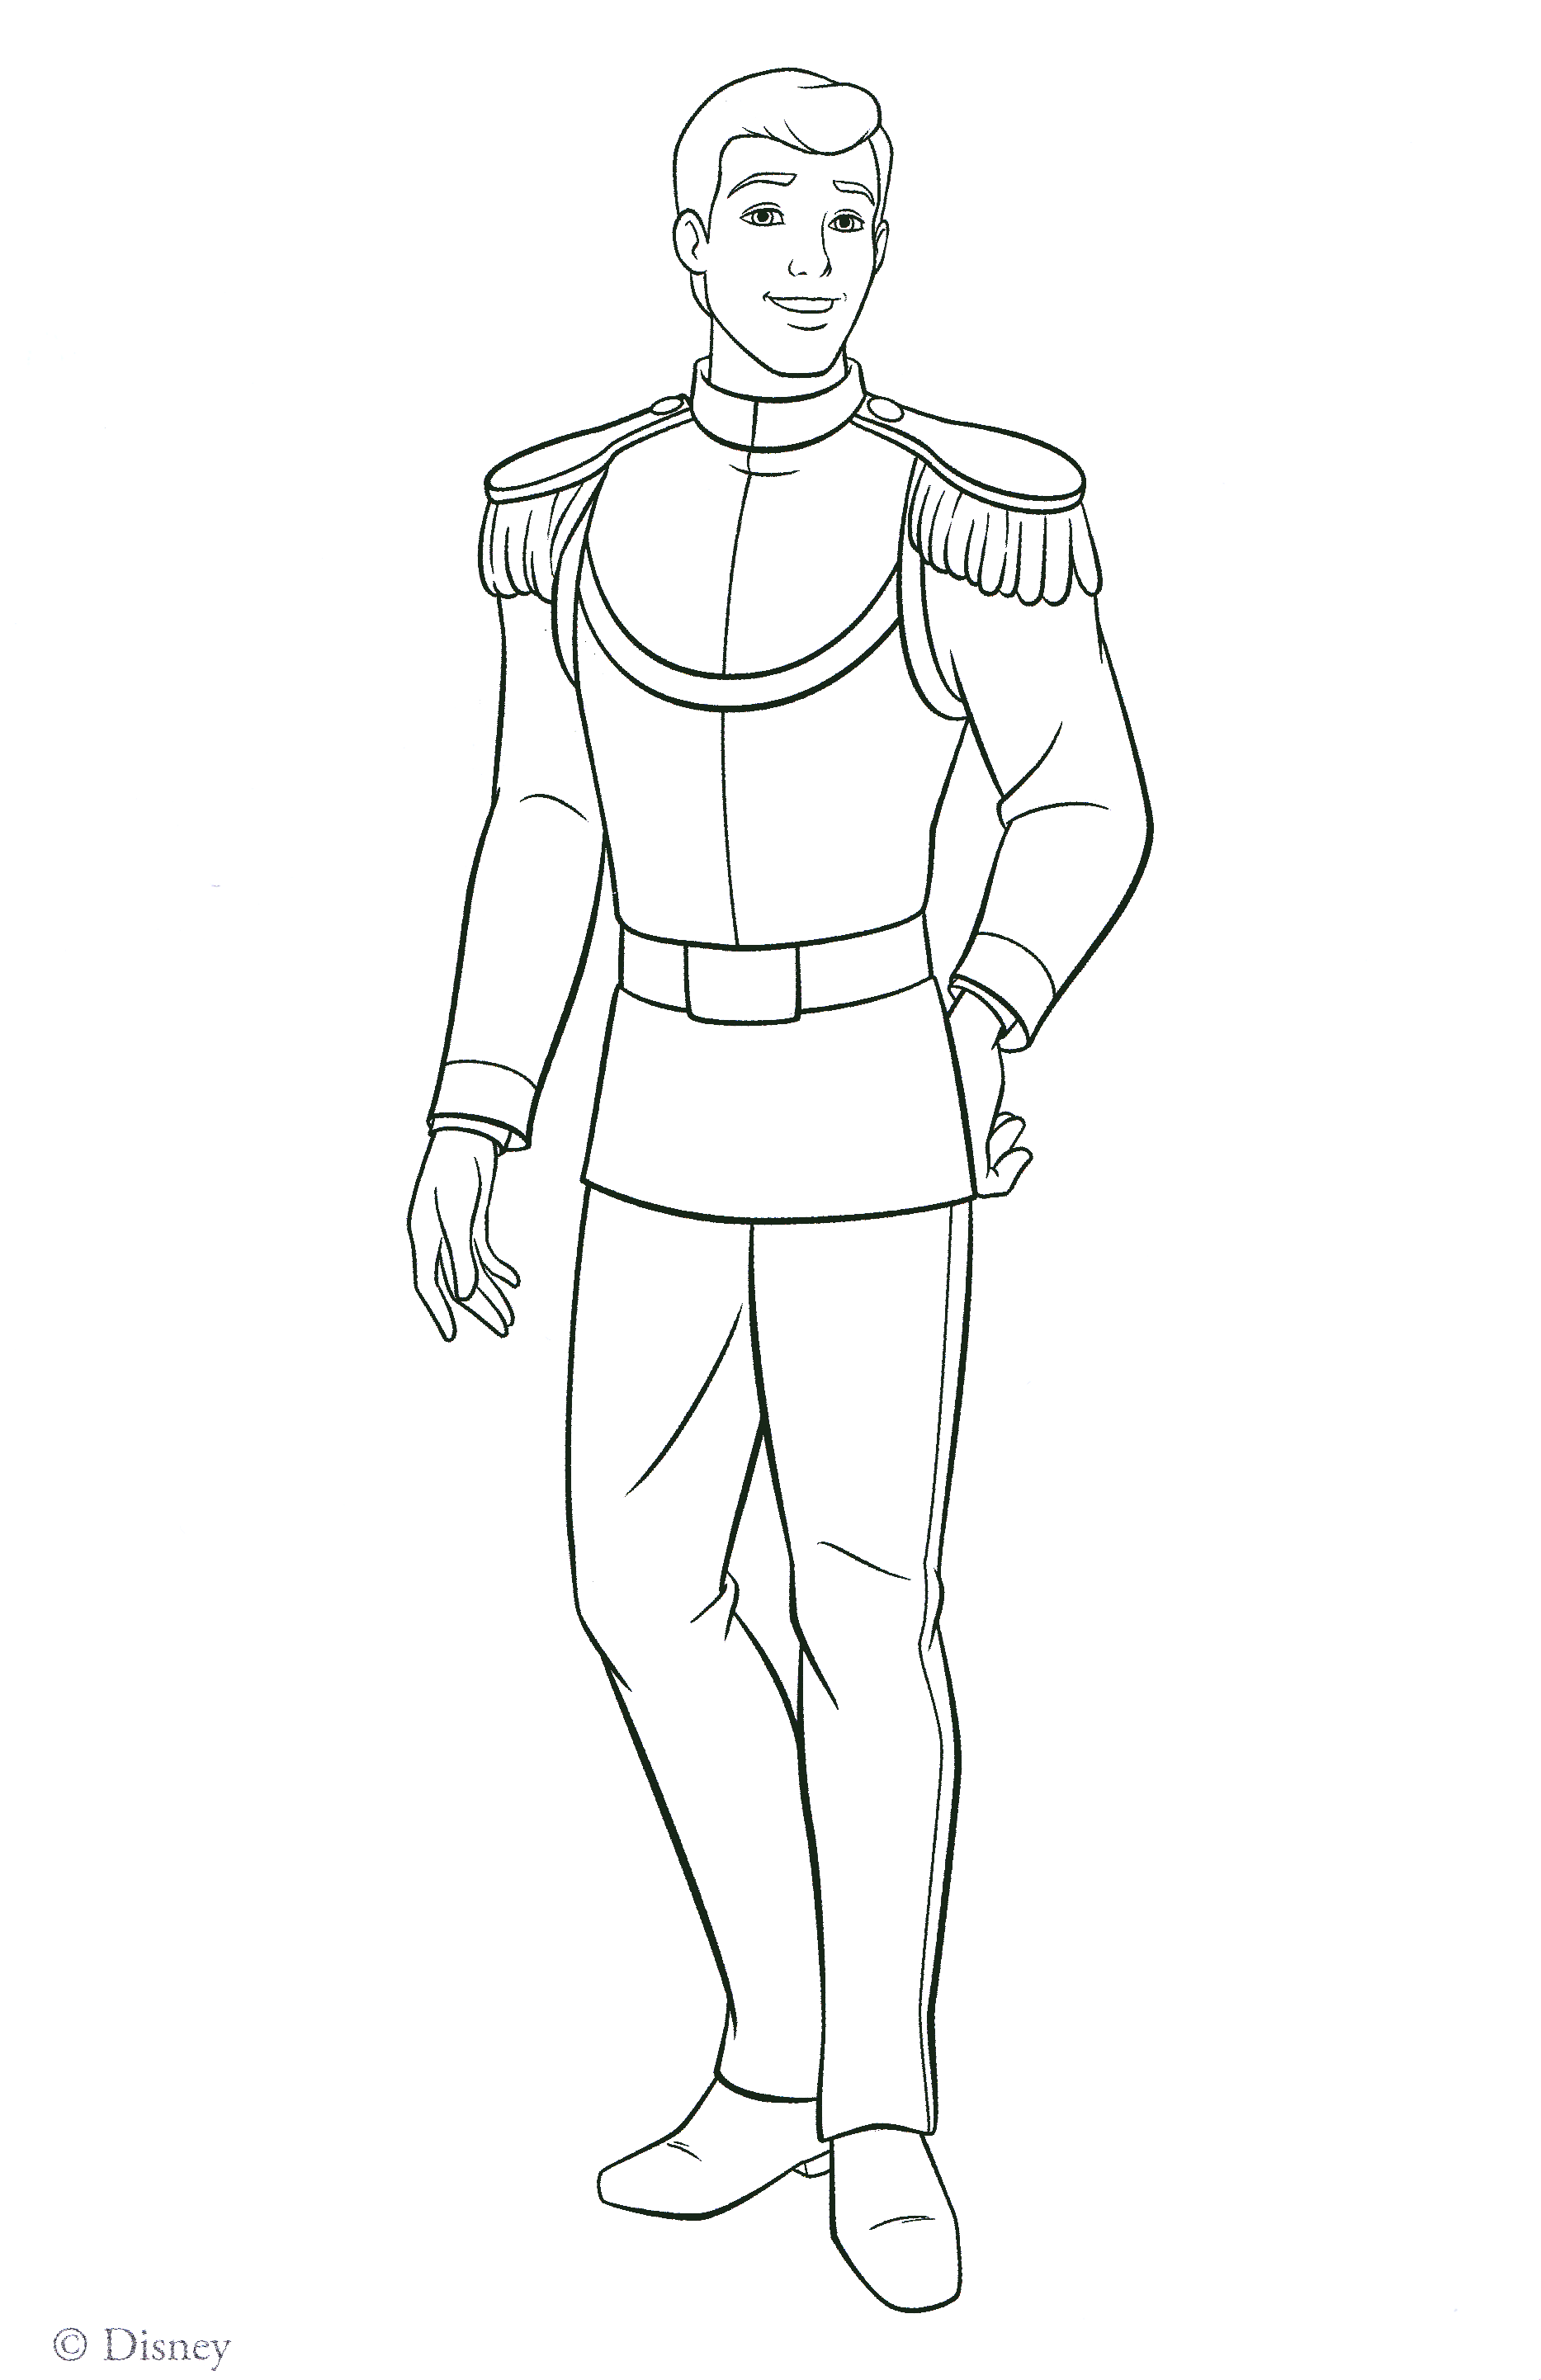 Prince Coloring Pages To Download And Print For Free